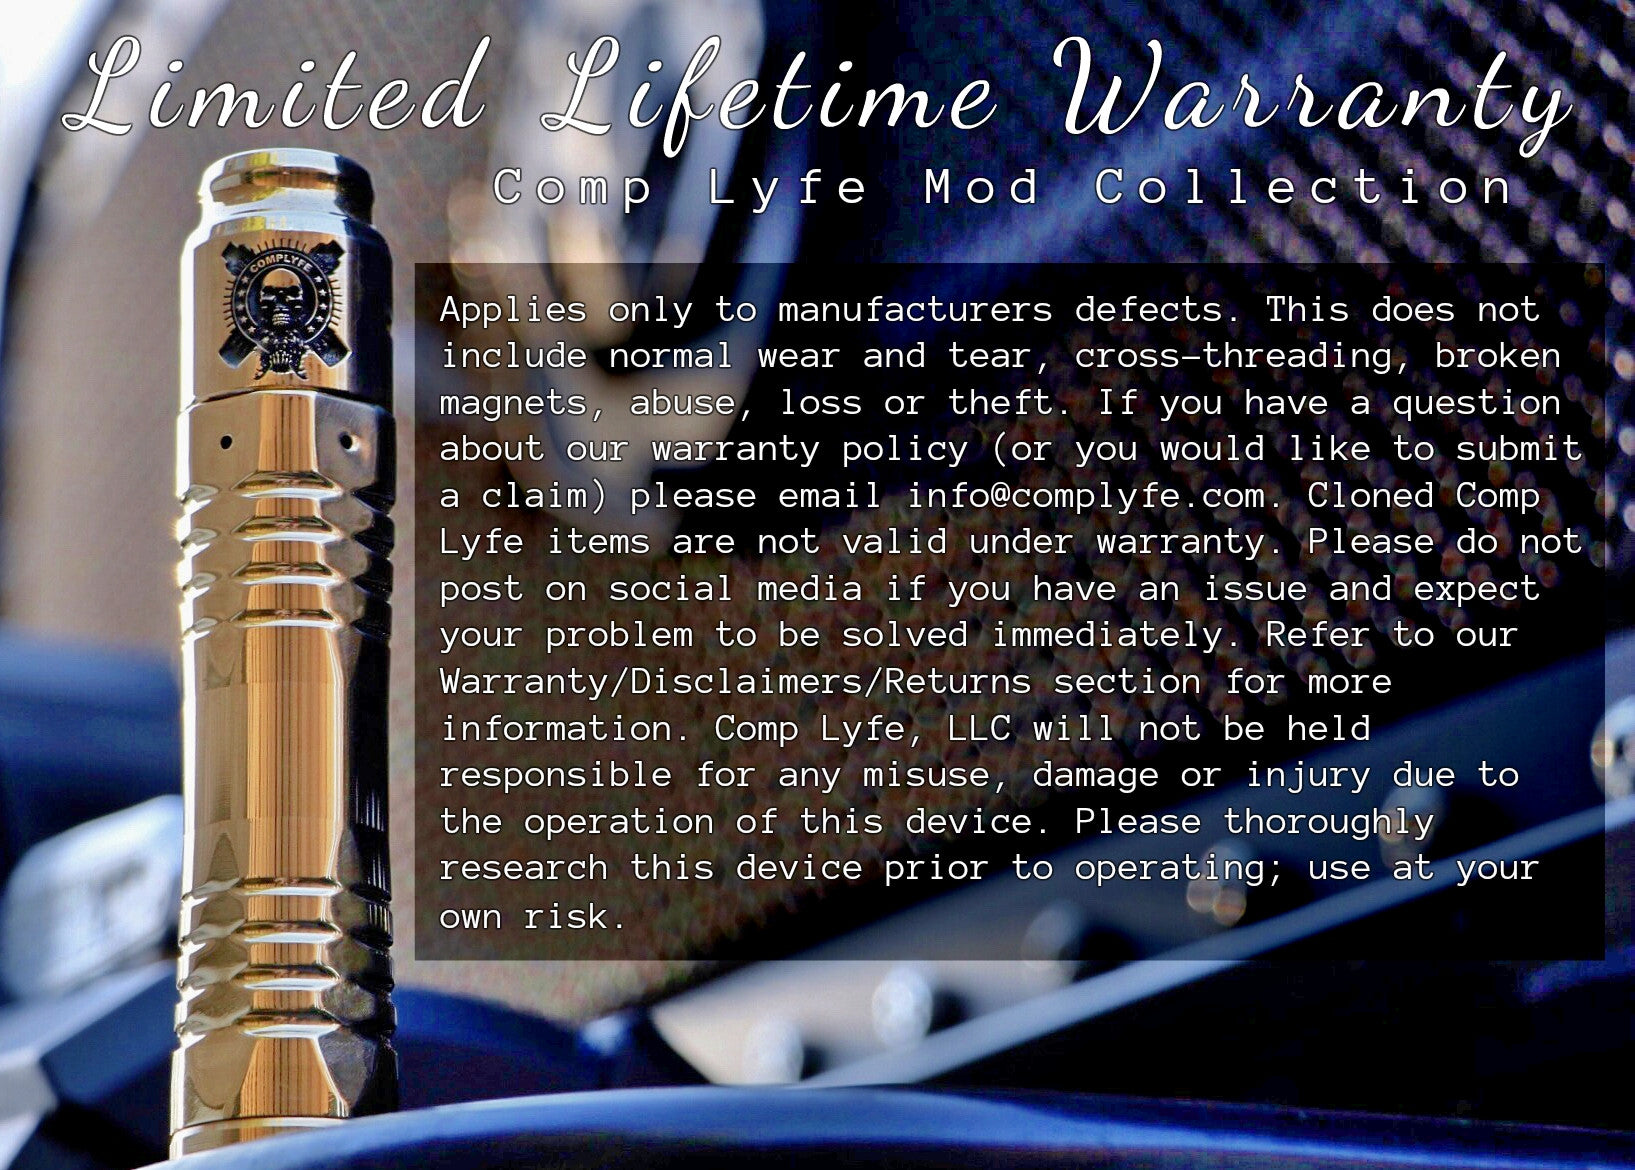 Comp Lyfe Mod Collection Warranty